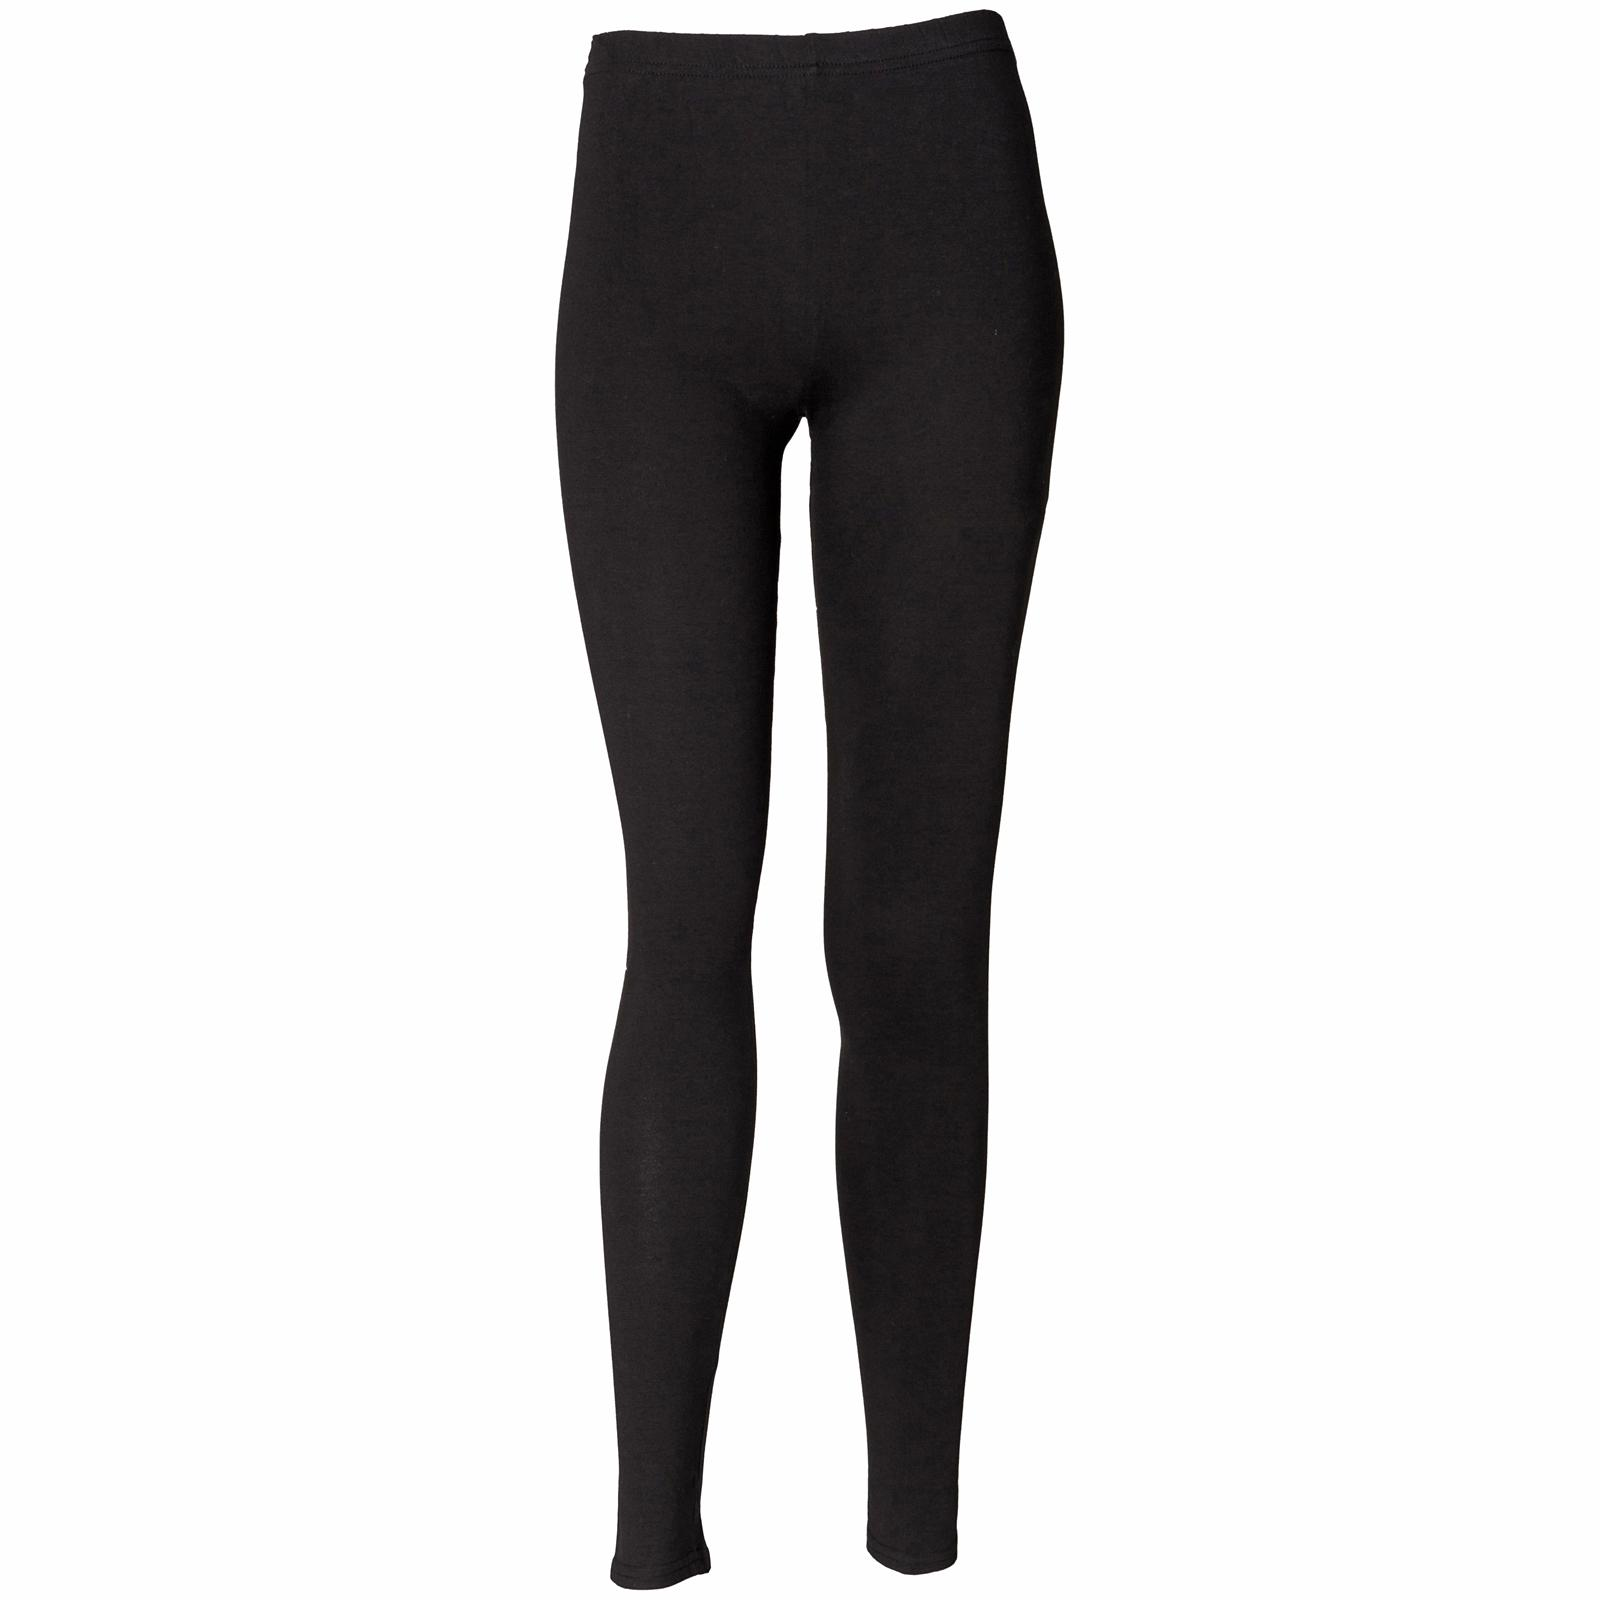 New-SKINNI-FIT-Womens-Ladies-Elasticated-Leggings-in-Black-S-XL